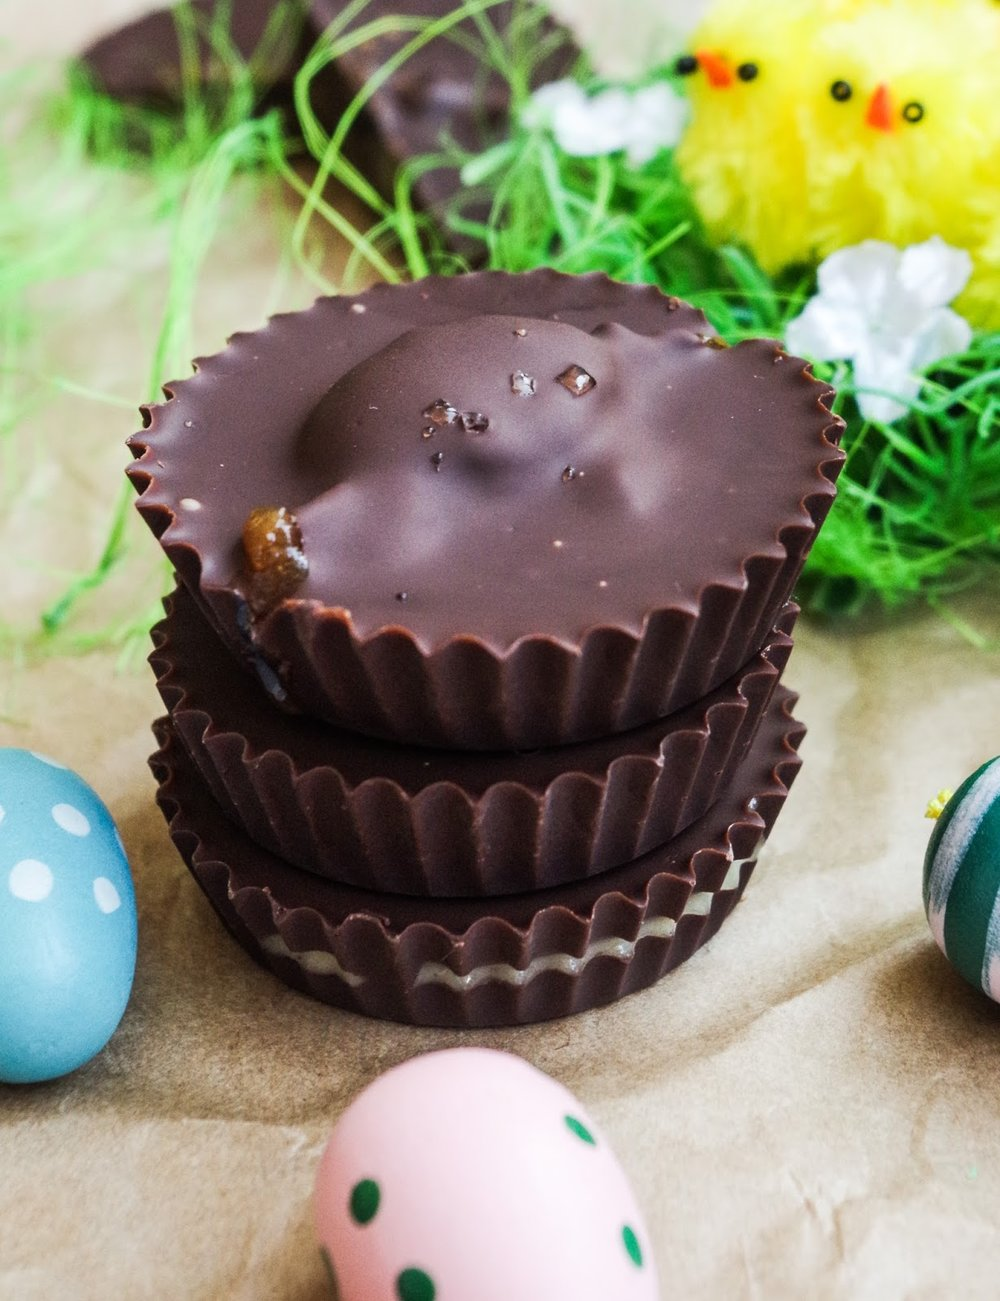 Easter Chocolate Cups in 3 flavors:  Salted Vanilla Caramel, Cashew Cream Egg, Hot Cross Bun by Cassidy of Euphoric Vegan